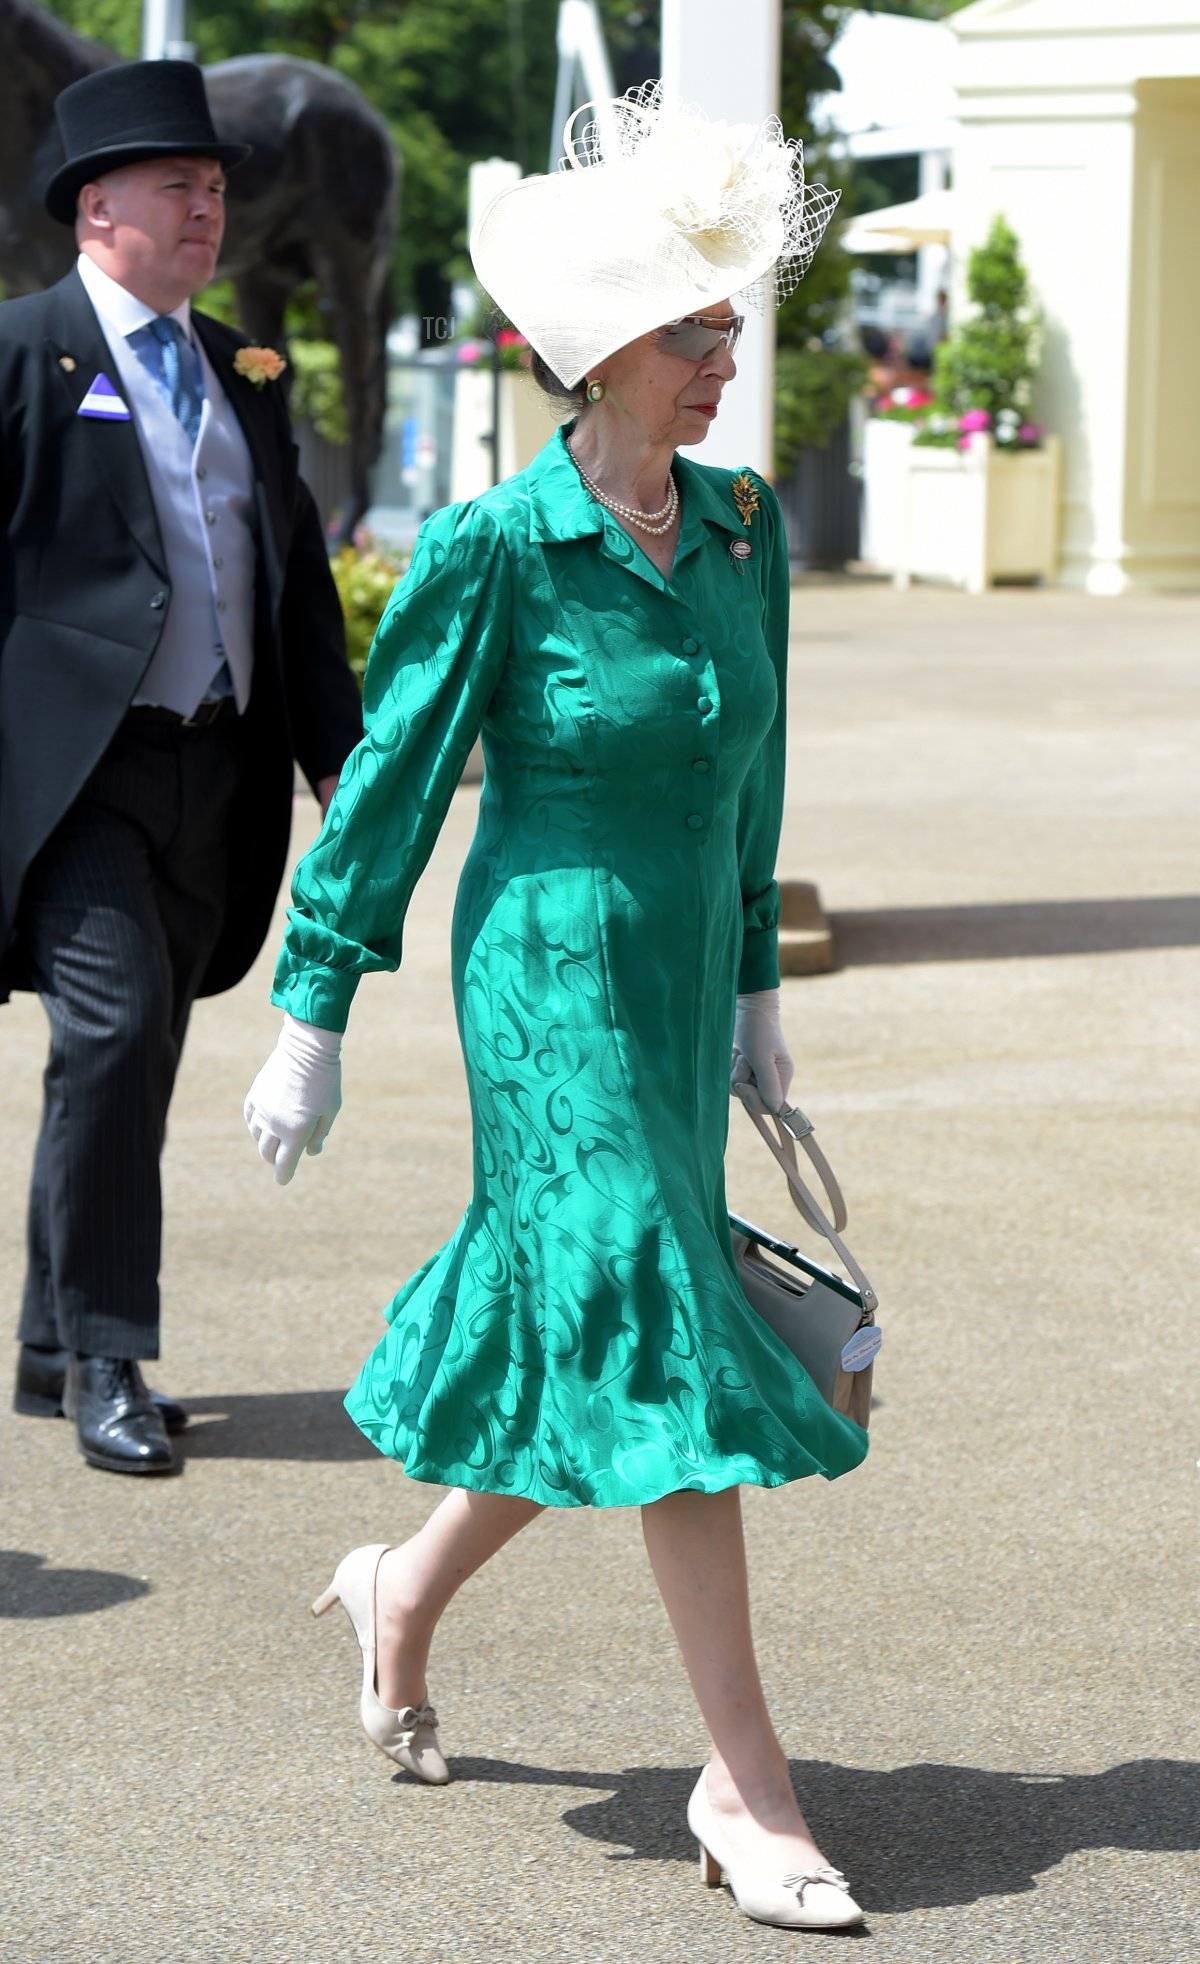 Princess Anne, Princess Royal is seen during Royal Ascot 2021 at Ascot Racecourse on June 16, 2021 in Ascot, England